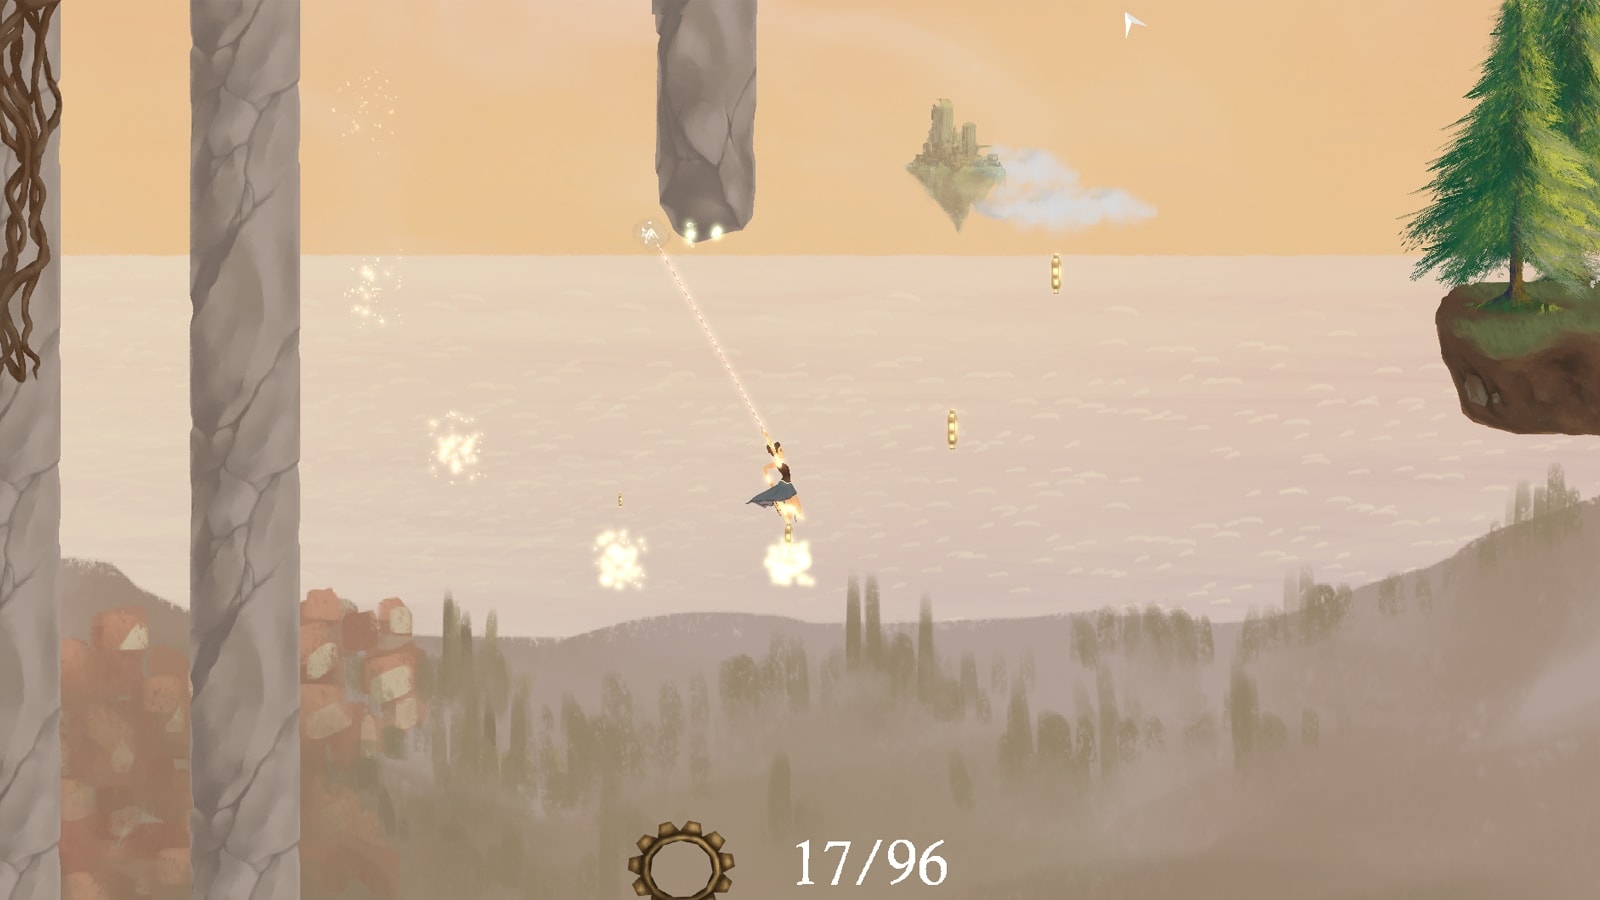 Alatheia swings over storm clouds discharging lightning with her grappling hook.